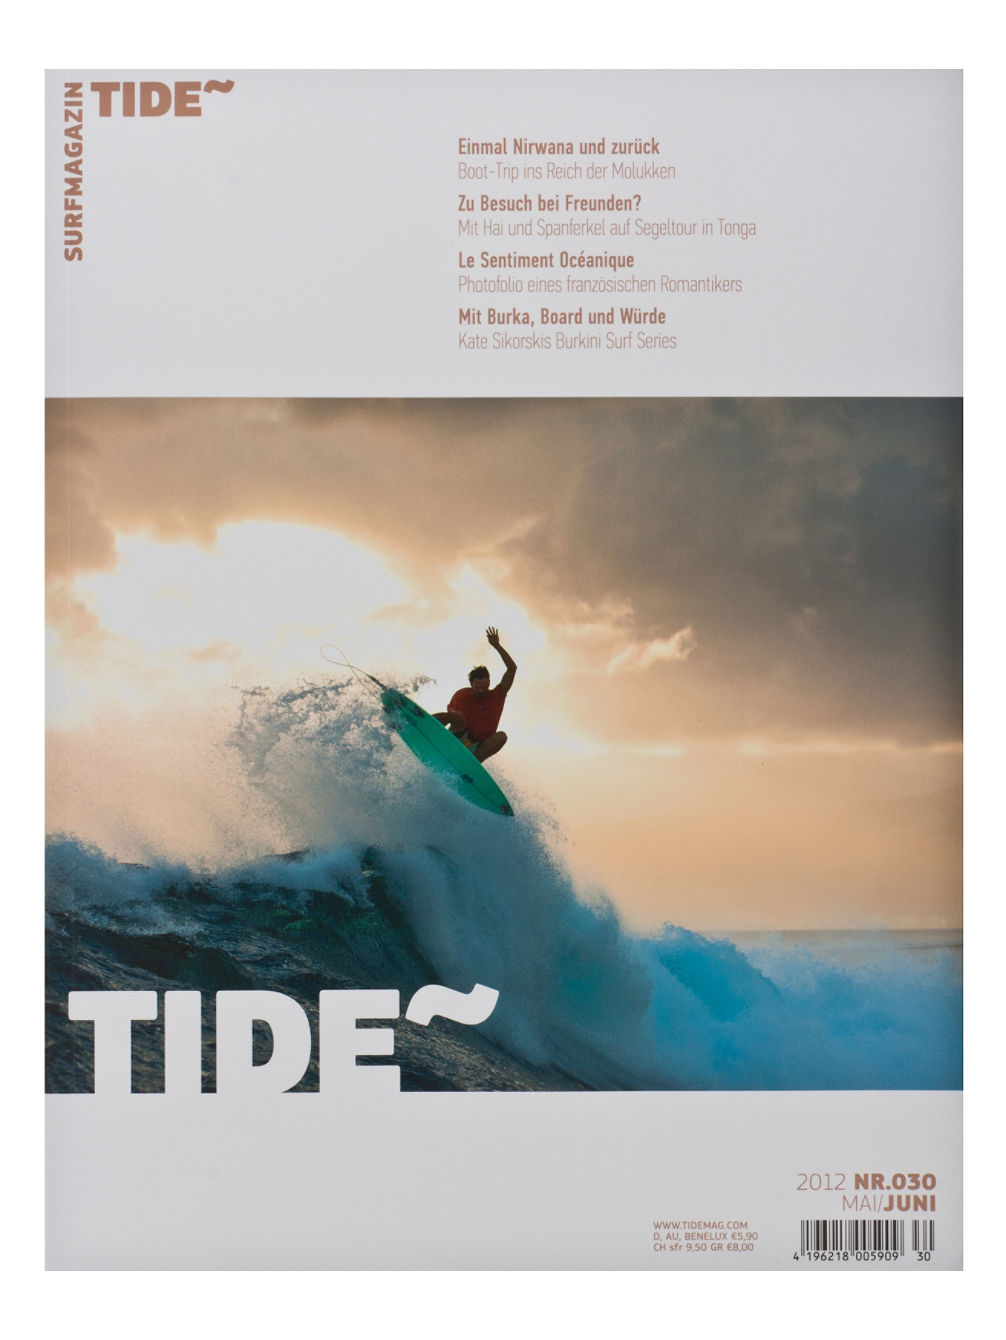 Tide Issue 30